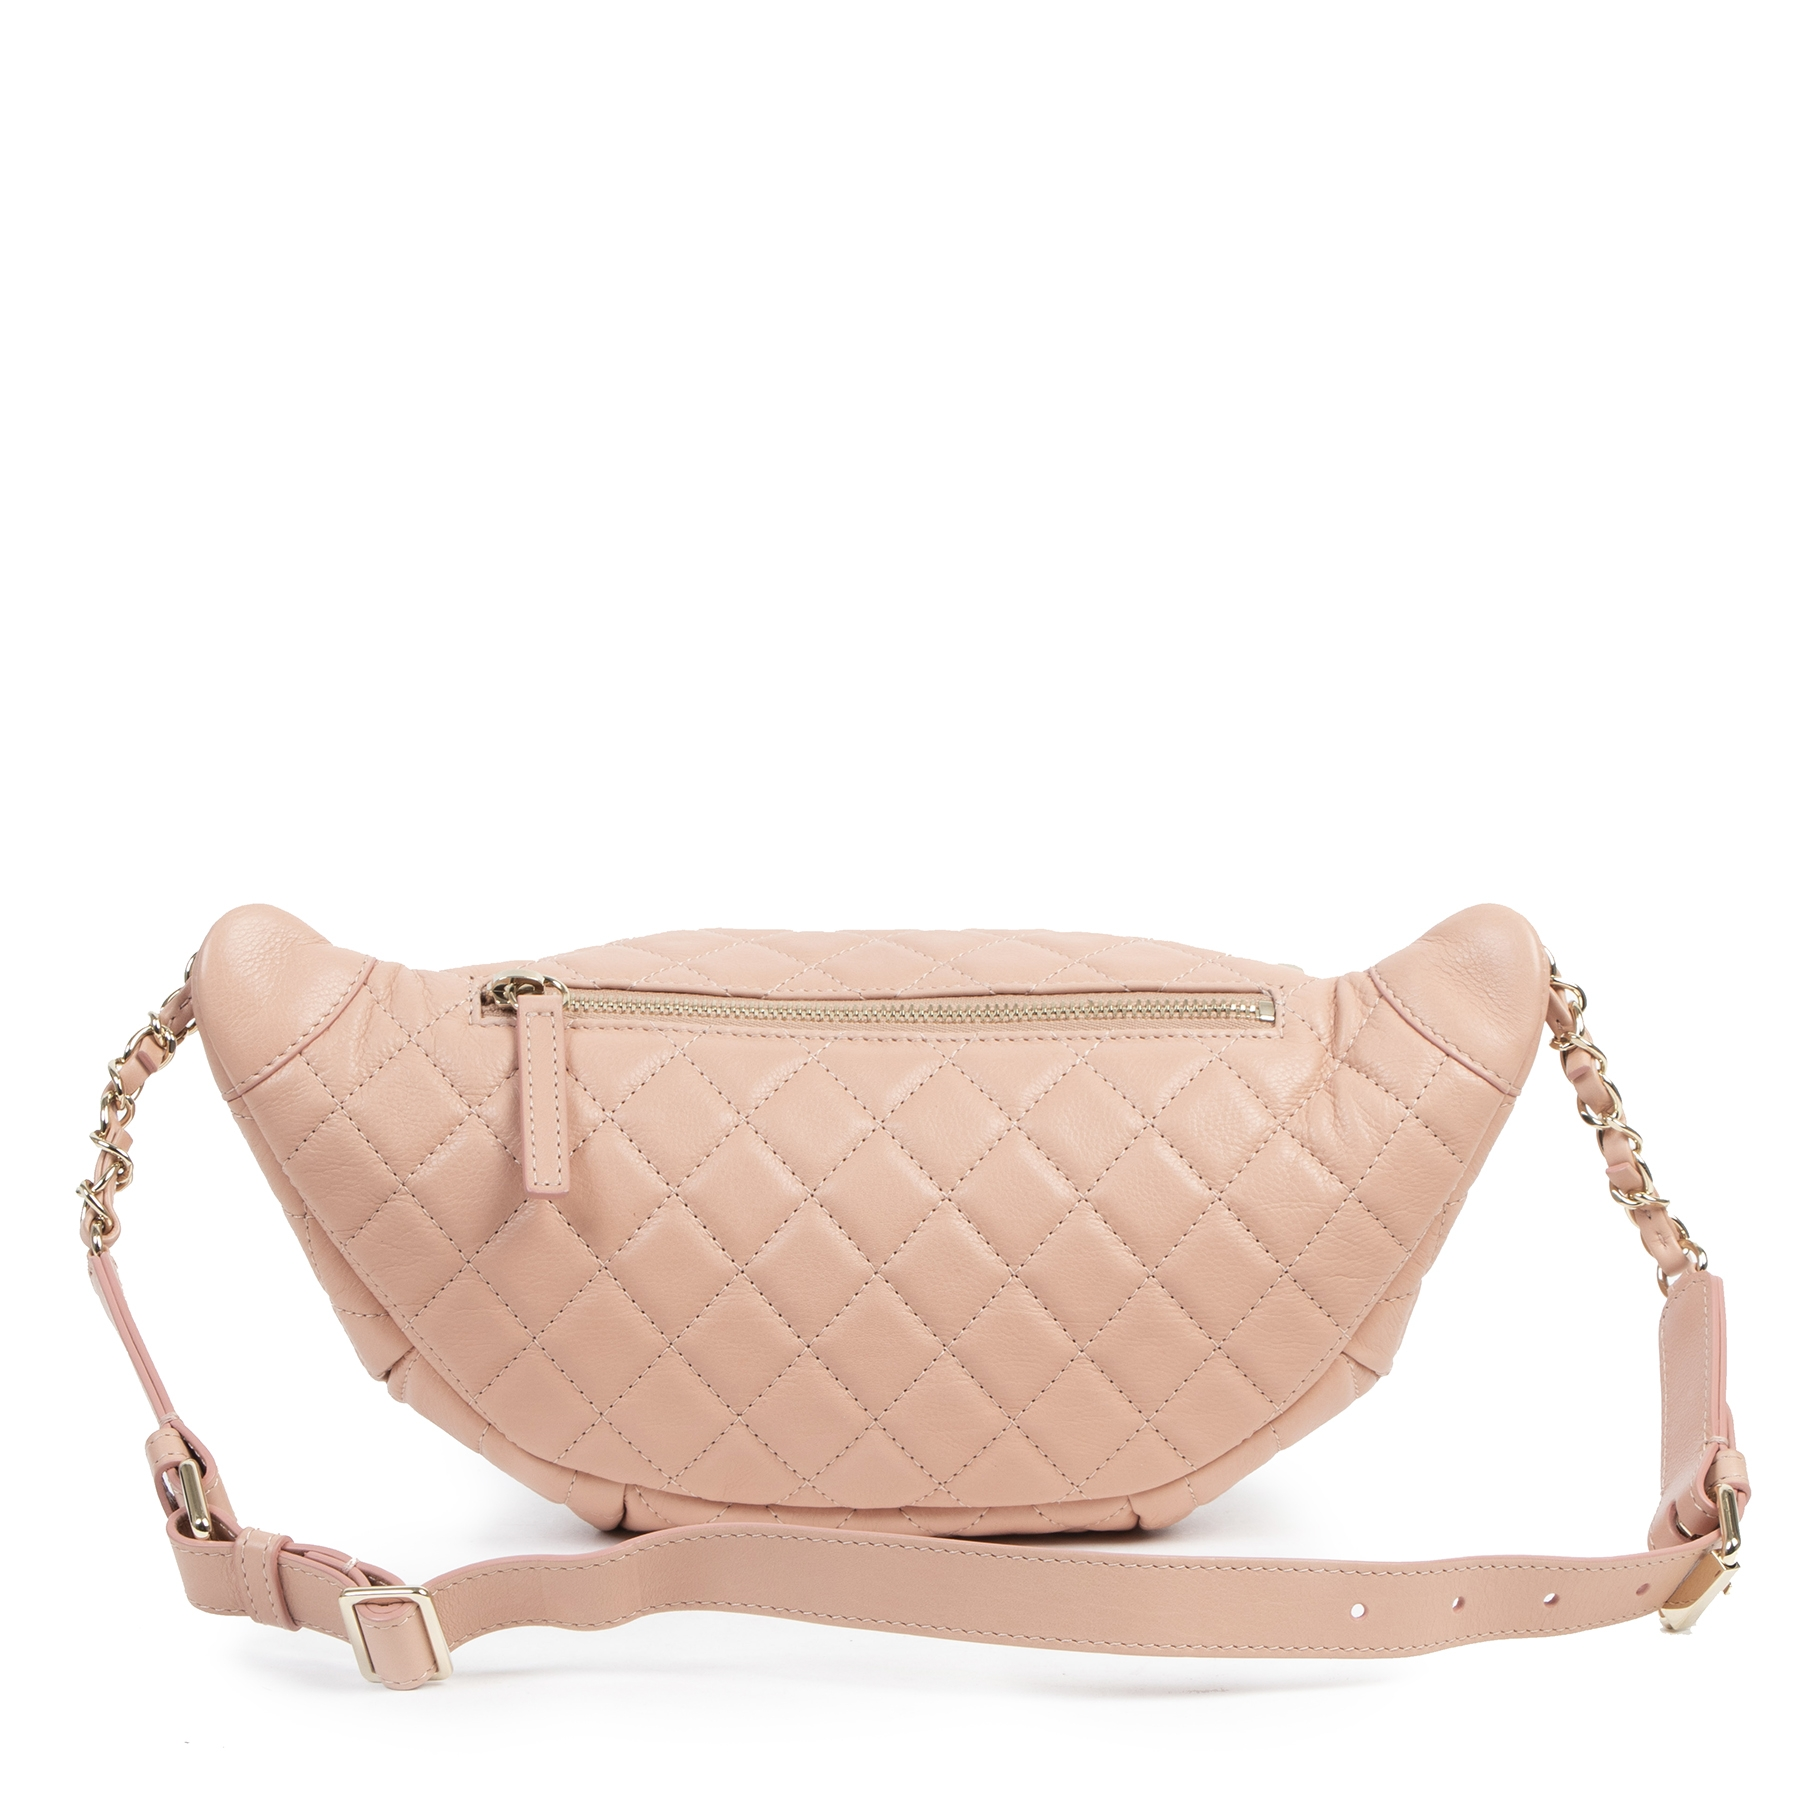 Authentic secondhand Chanel Dusty Pink Belt Bag designer bags fashion luxury vintage webshop safe secure online shopping designer high end brands